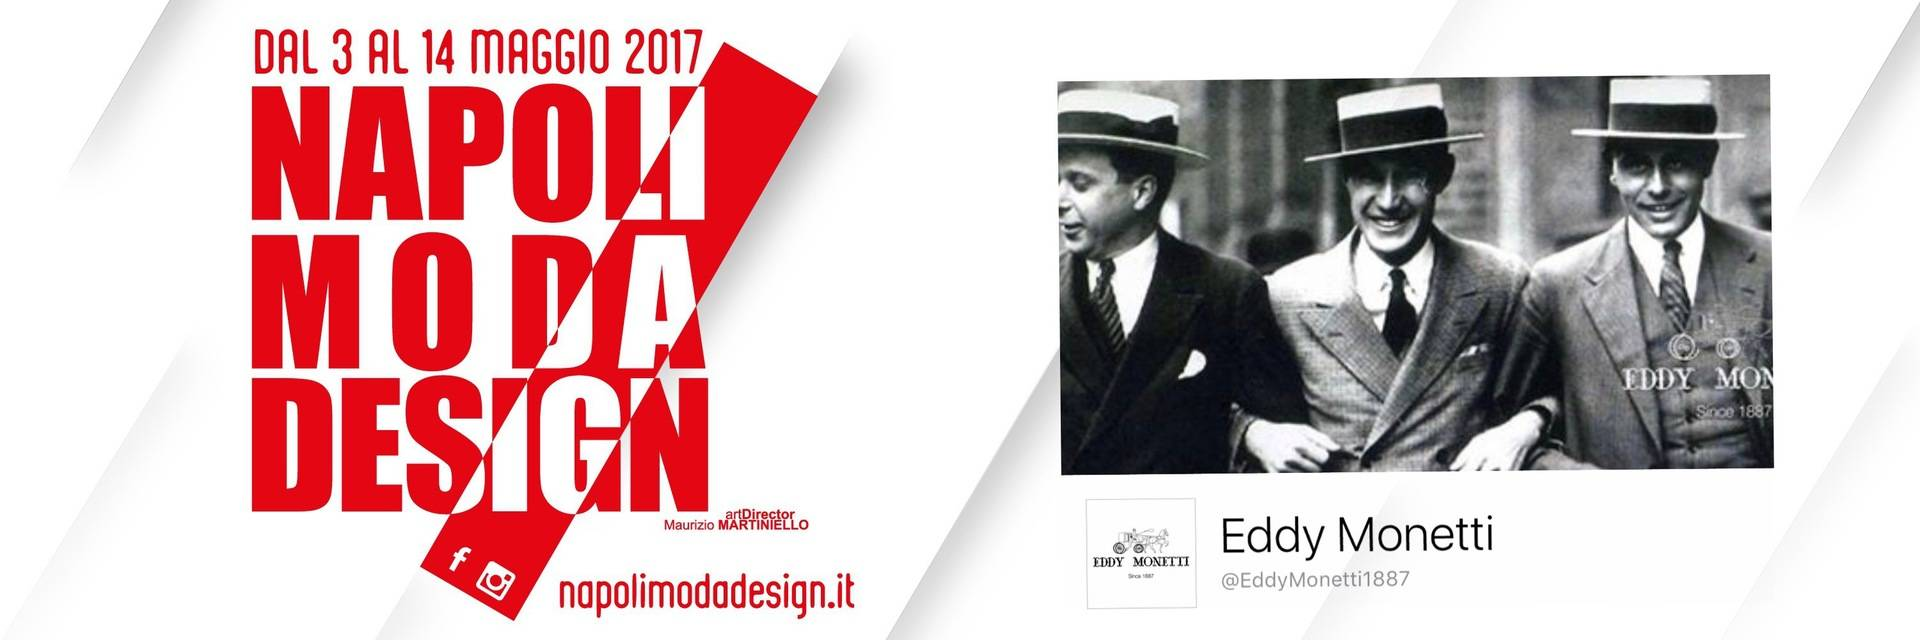 Partner Napoli Moda Design 2017